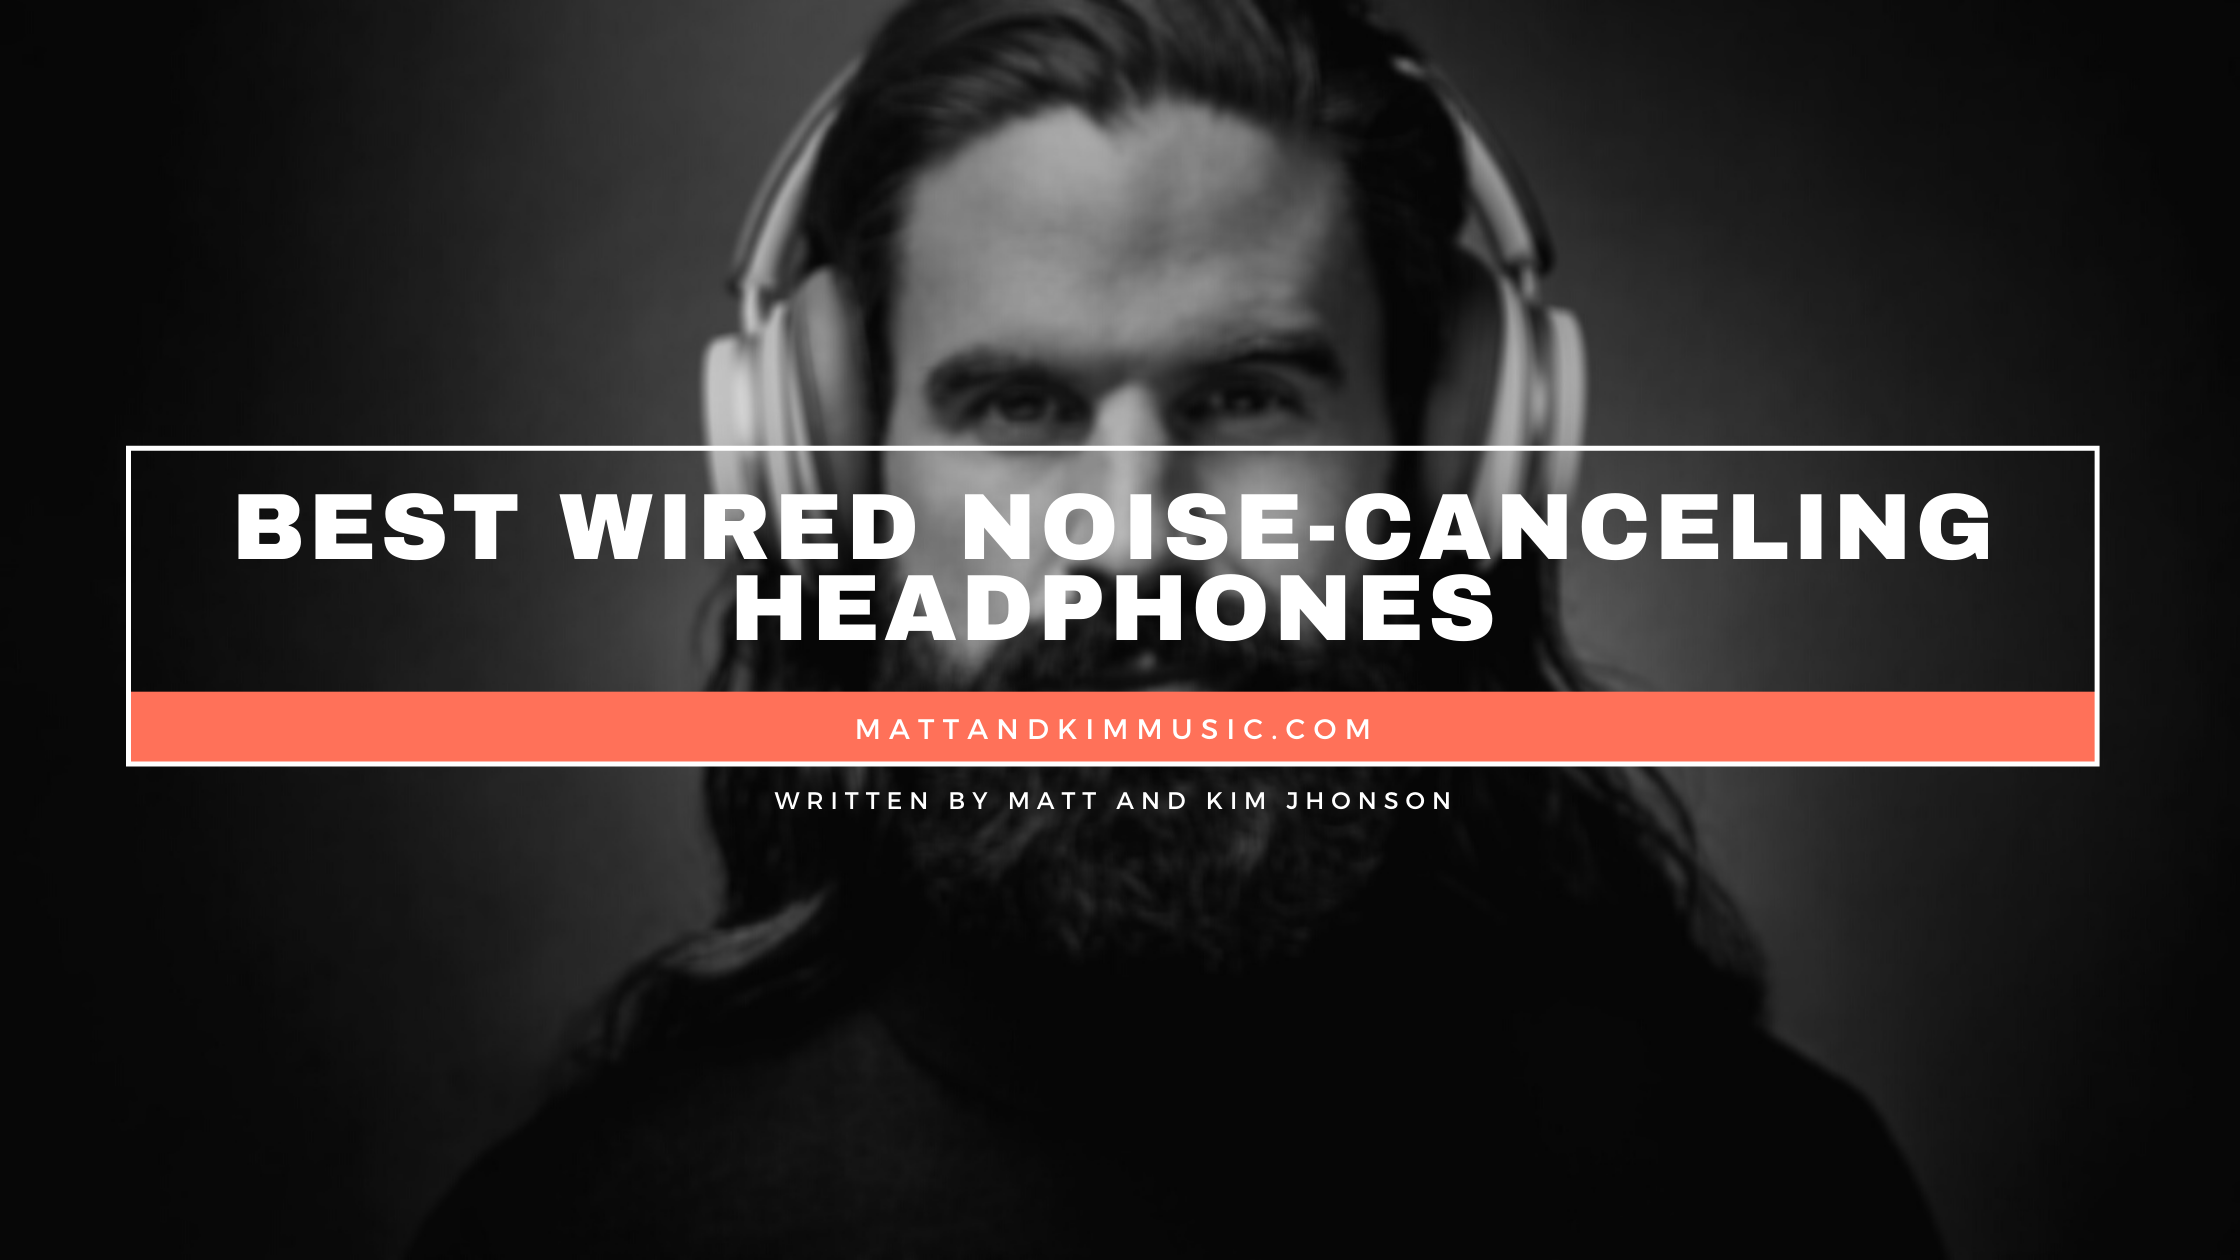 best wired noise-canceling headphones